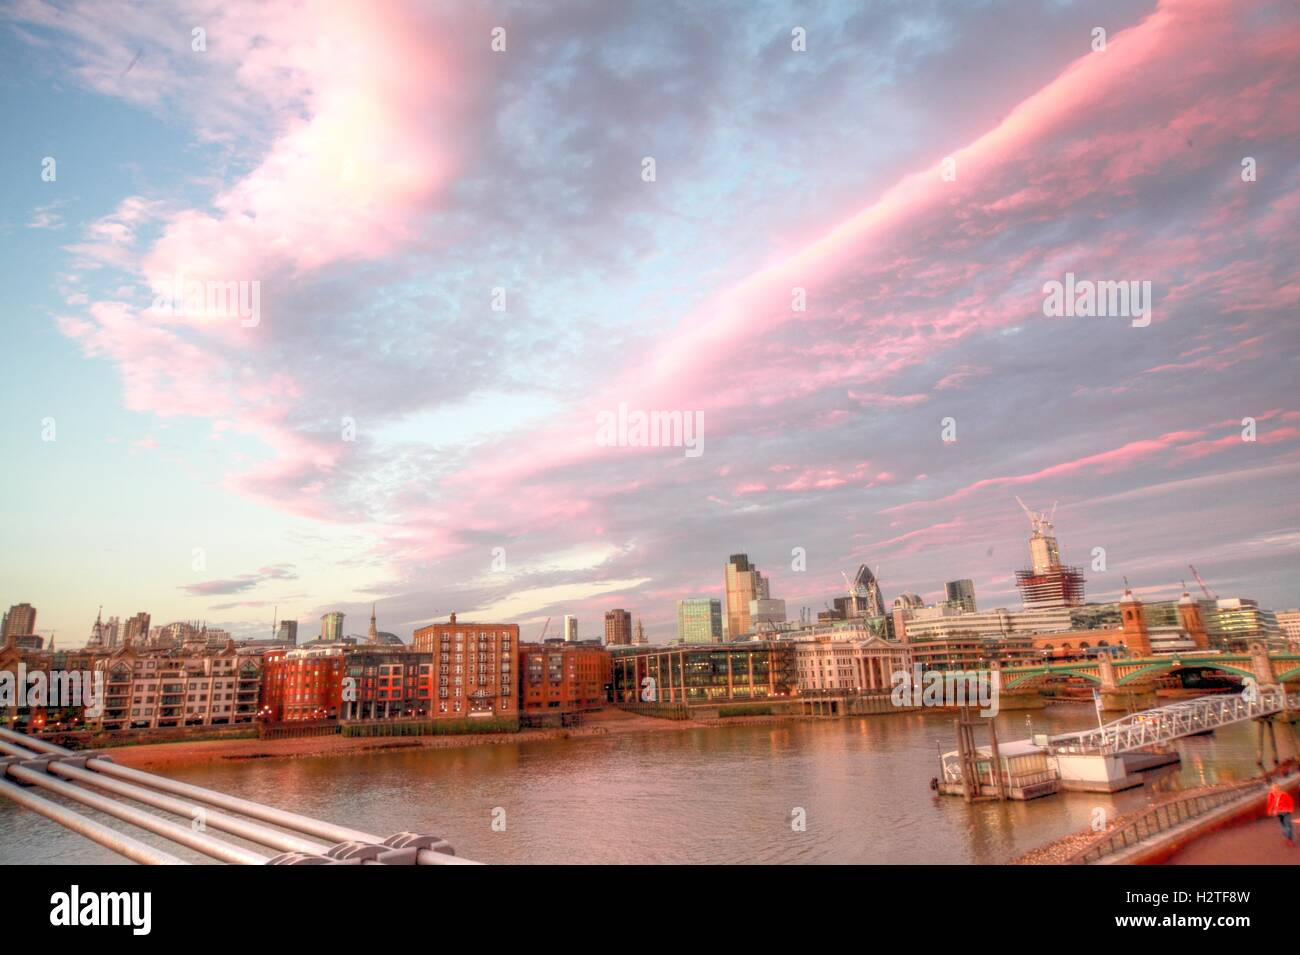 River Thames Panorama, London, England with stunning sky Stock Photo